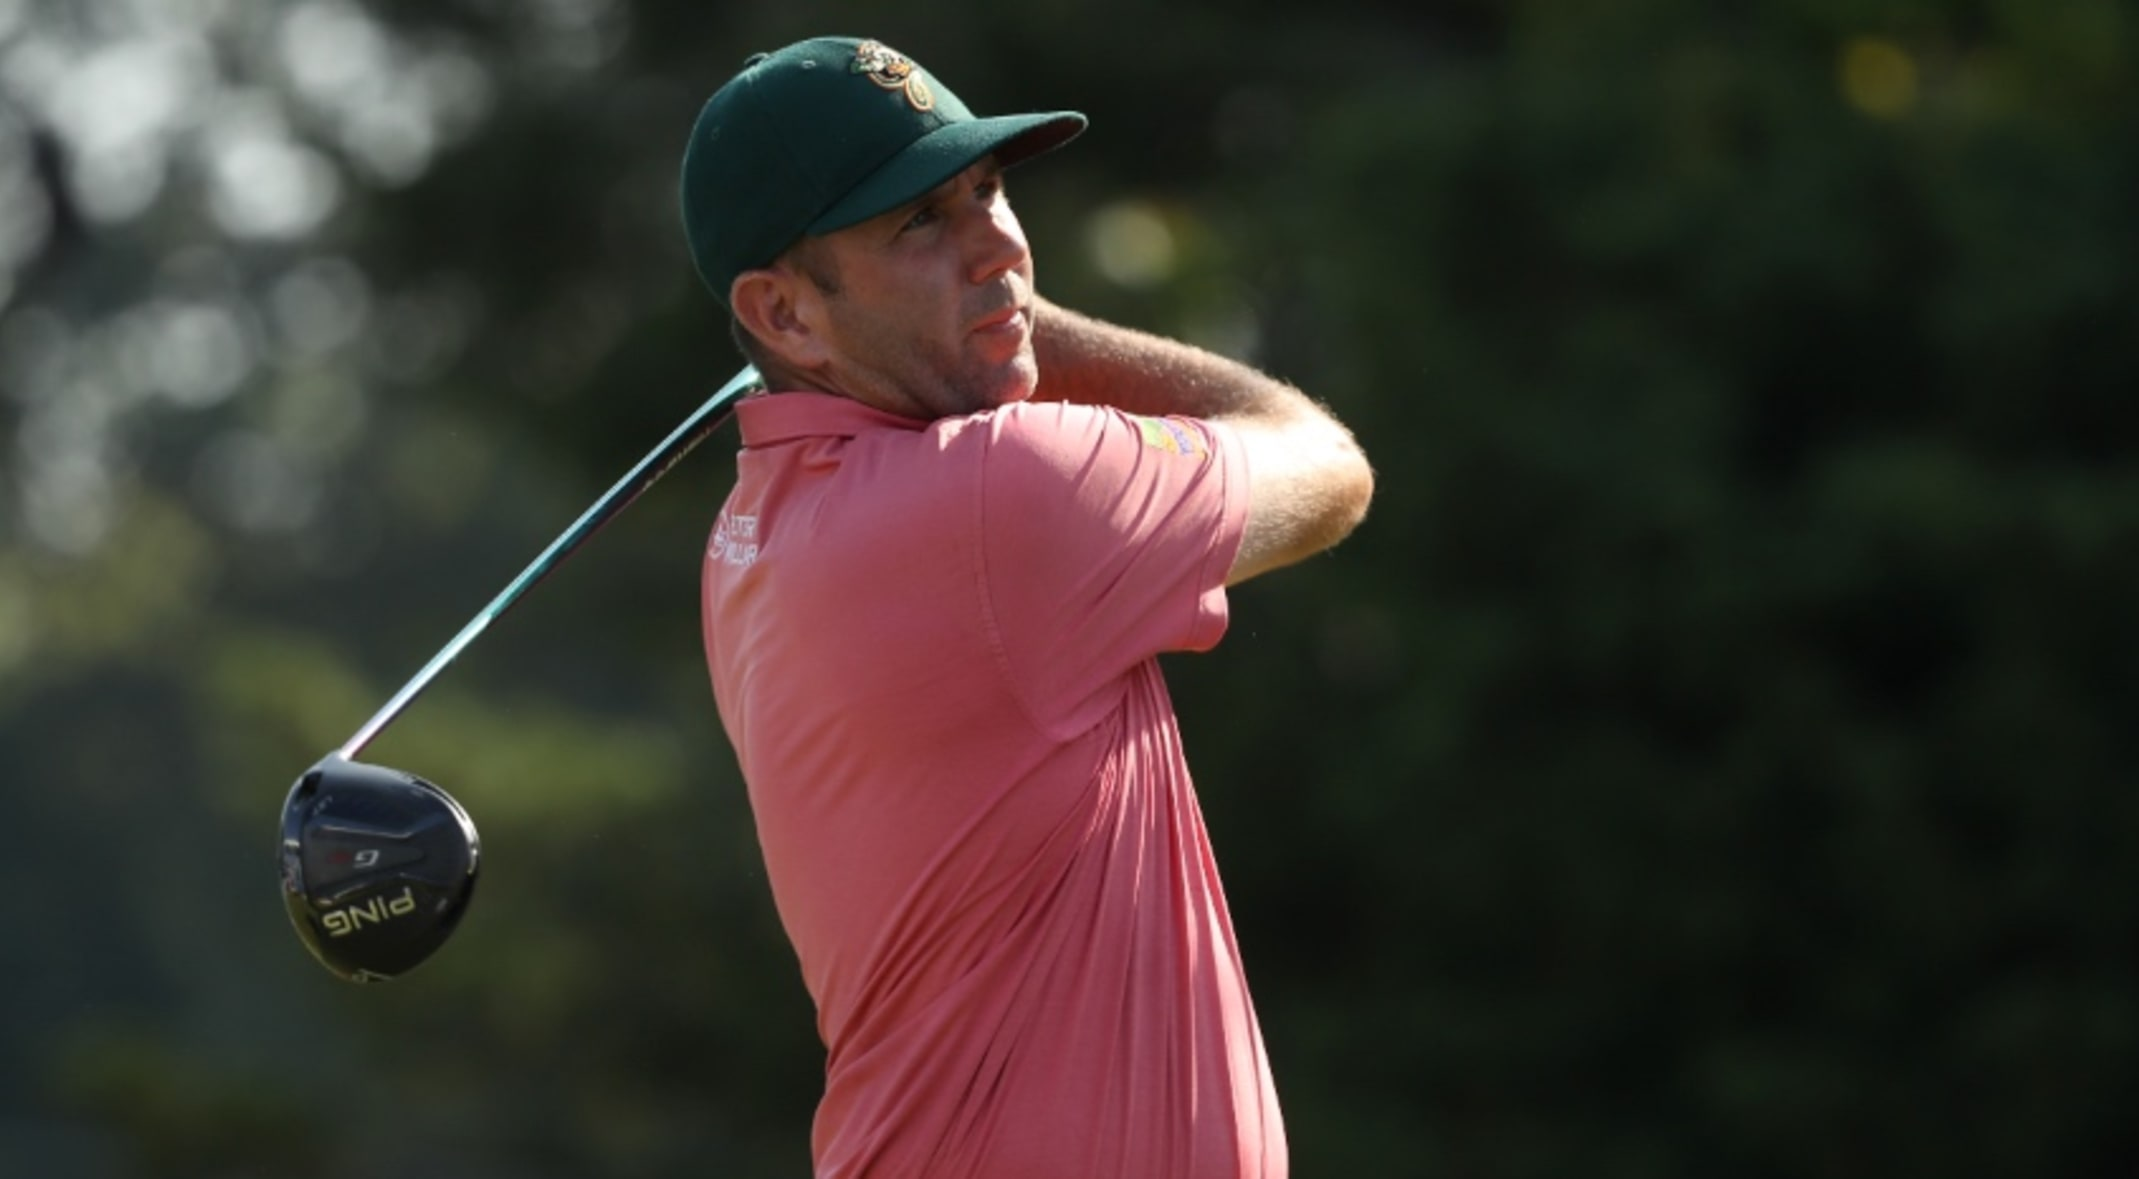 29c31860 Josh Teater shoots 64 with TOUR card on the line at Wyndham Championship